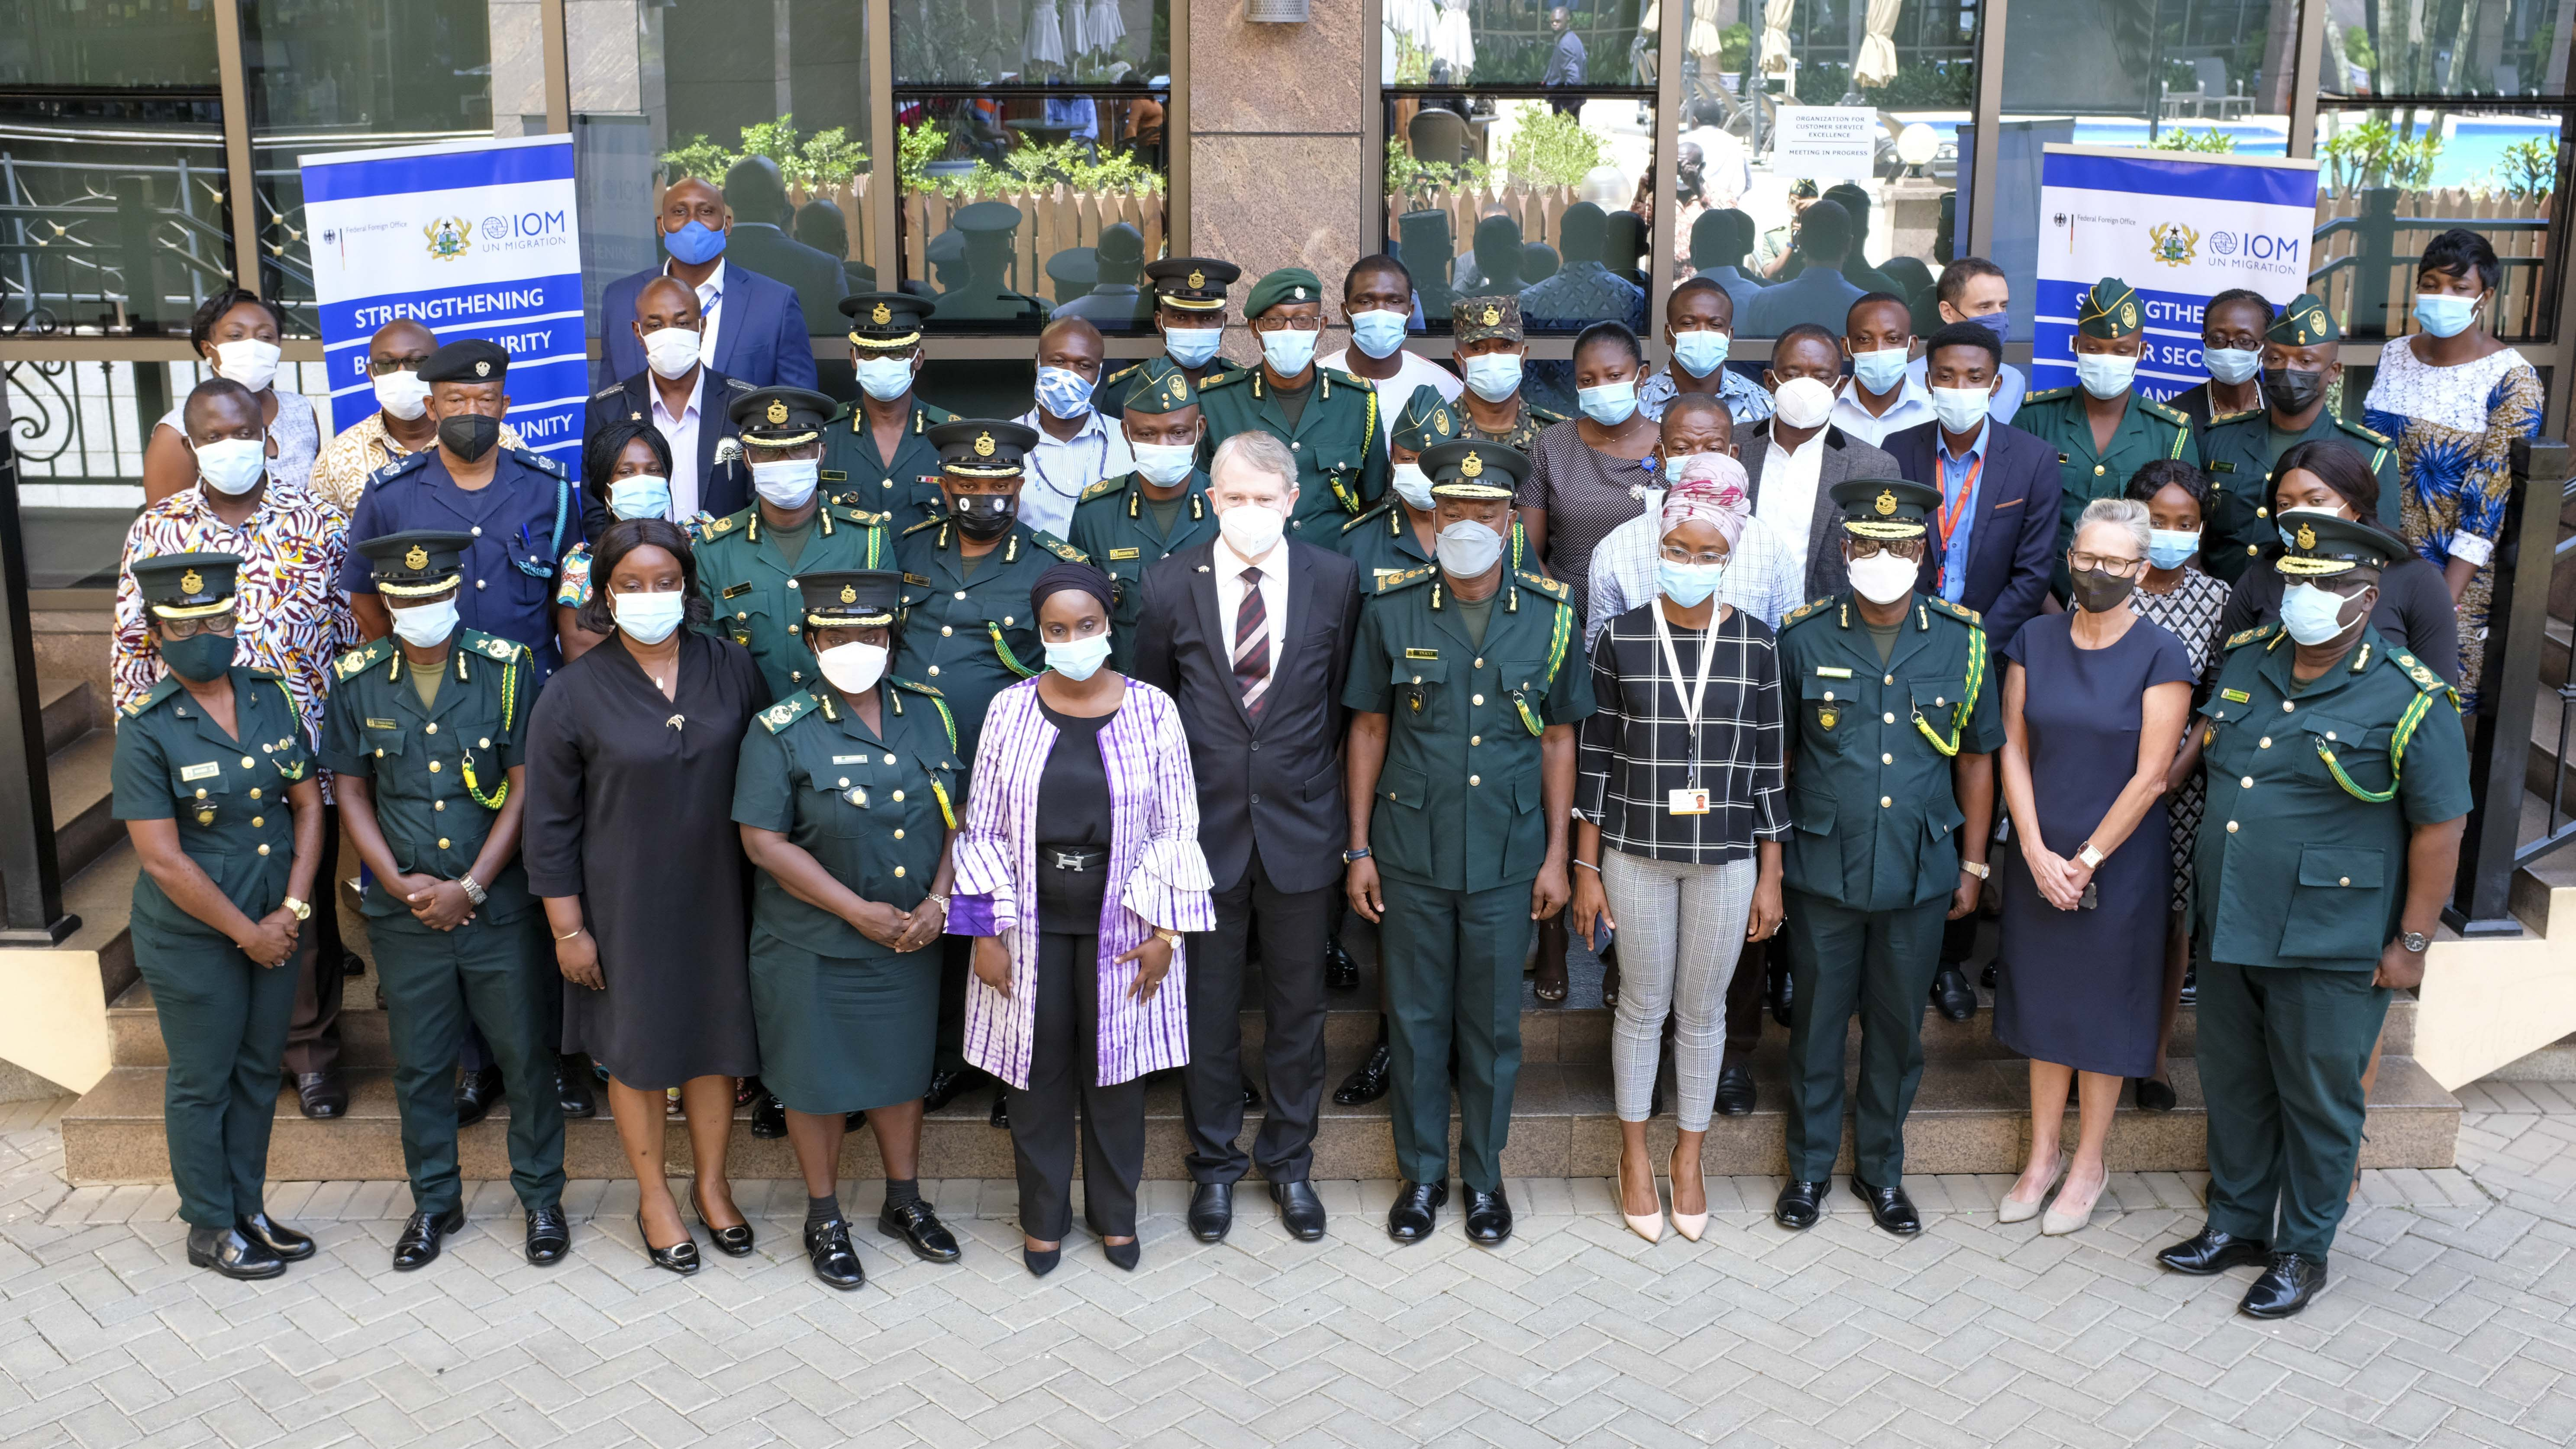 IOM and Ghana Immigration Service launch project to strengthen border security